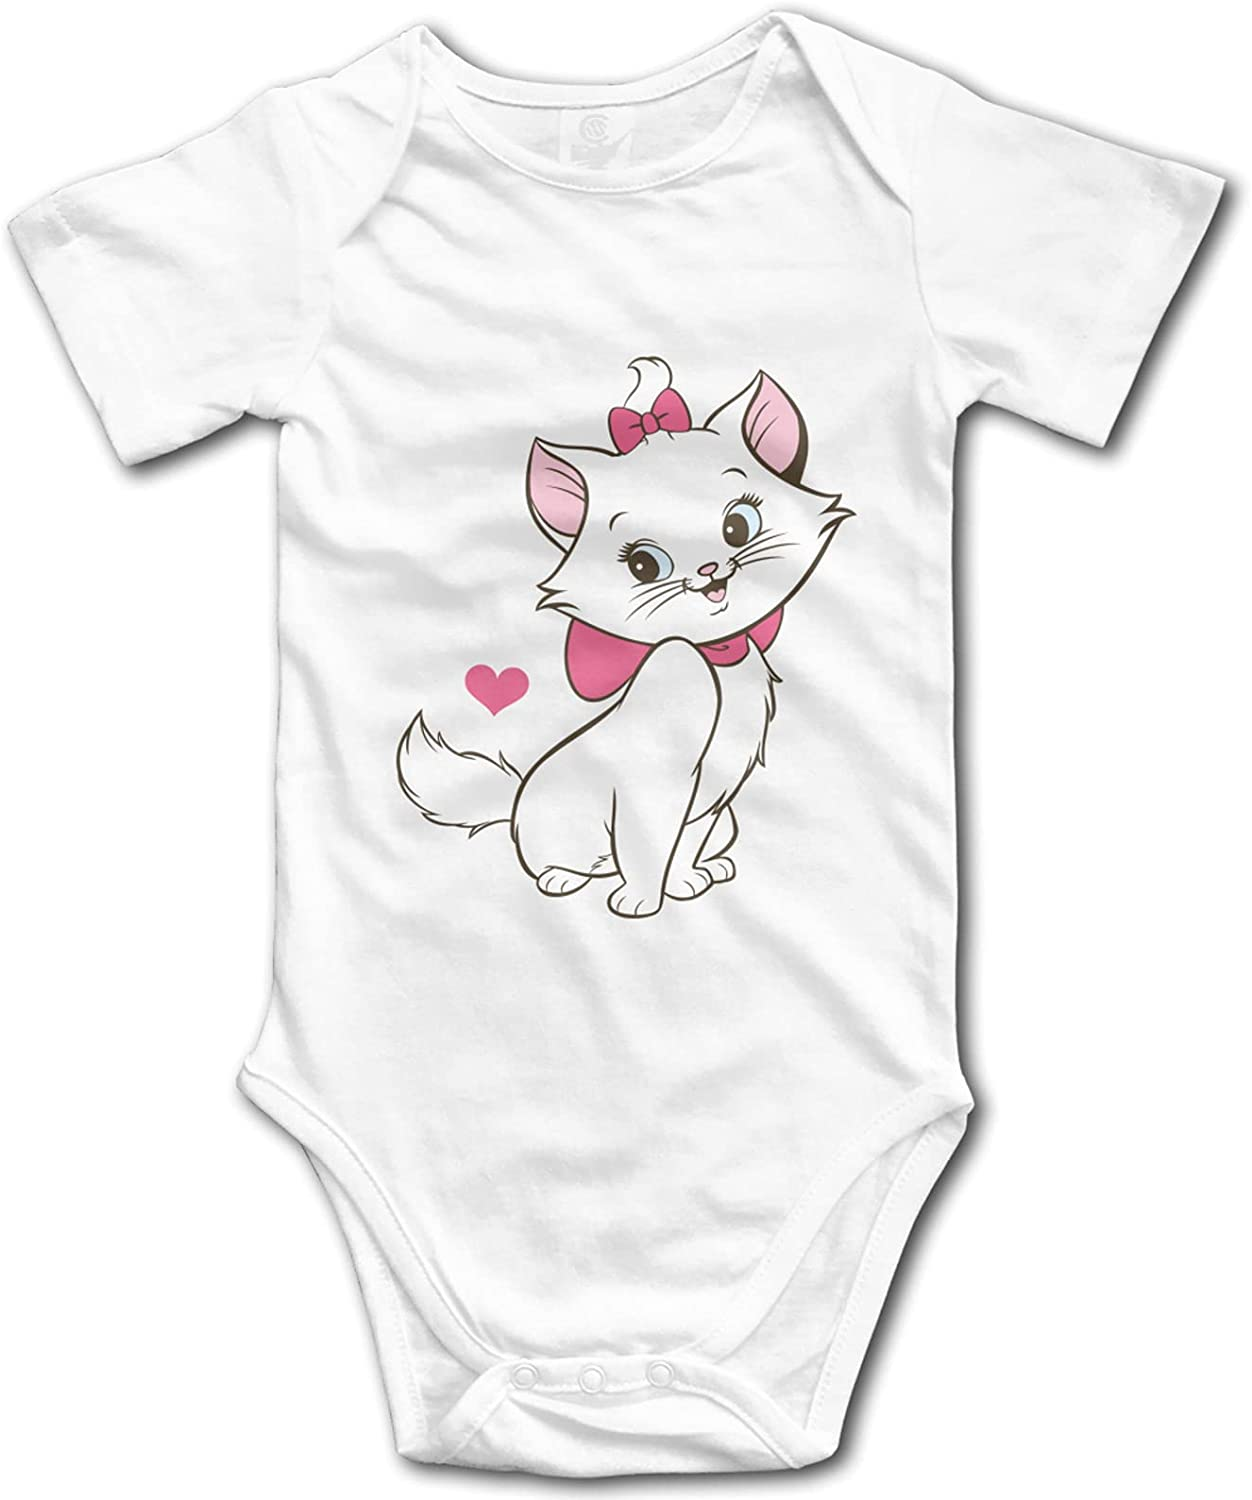 The Aristocats Infant Baby Girl 100% Cotto Clothes Boys quality warranty Bodysuit Brand Cheap Sale Venue